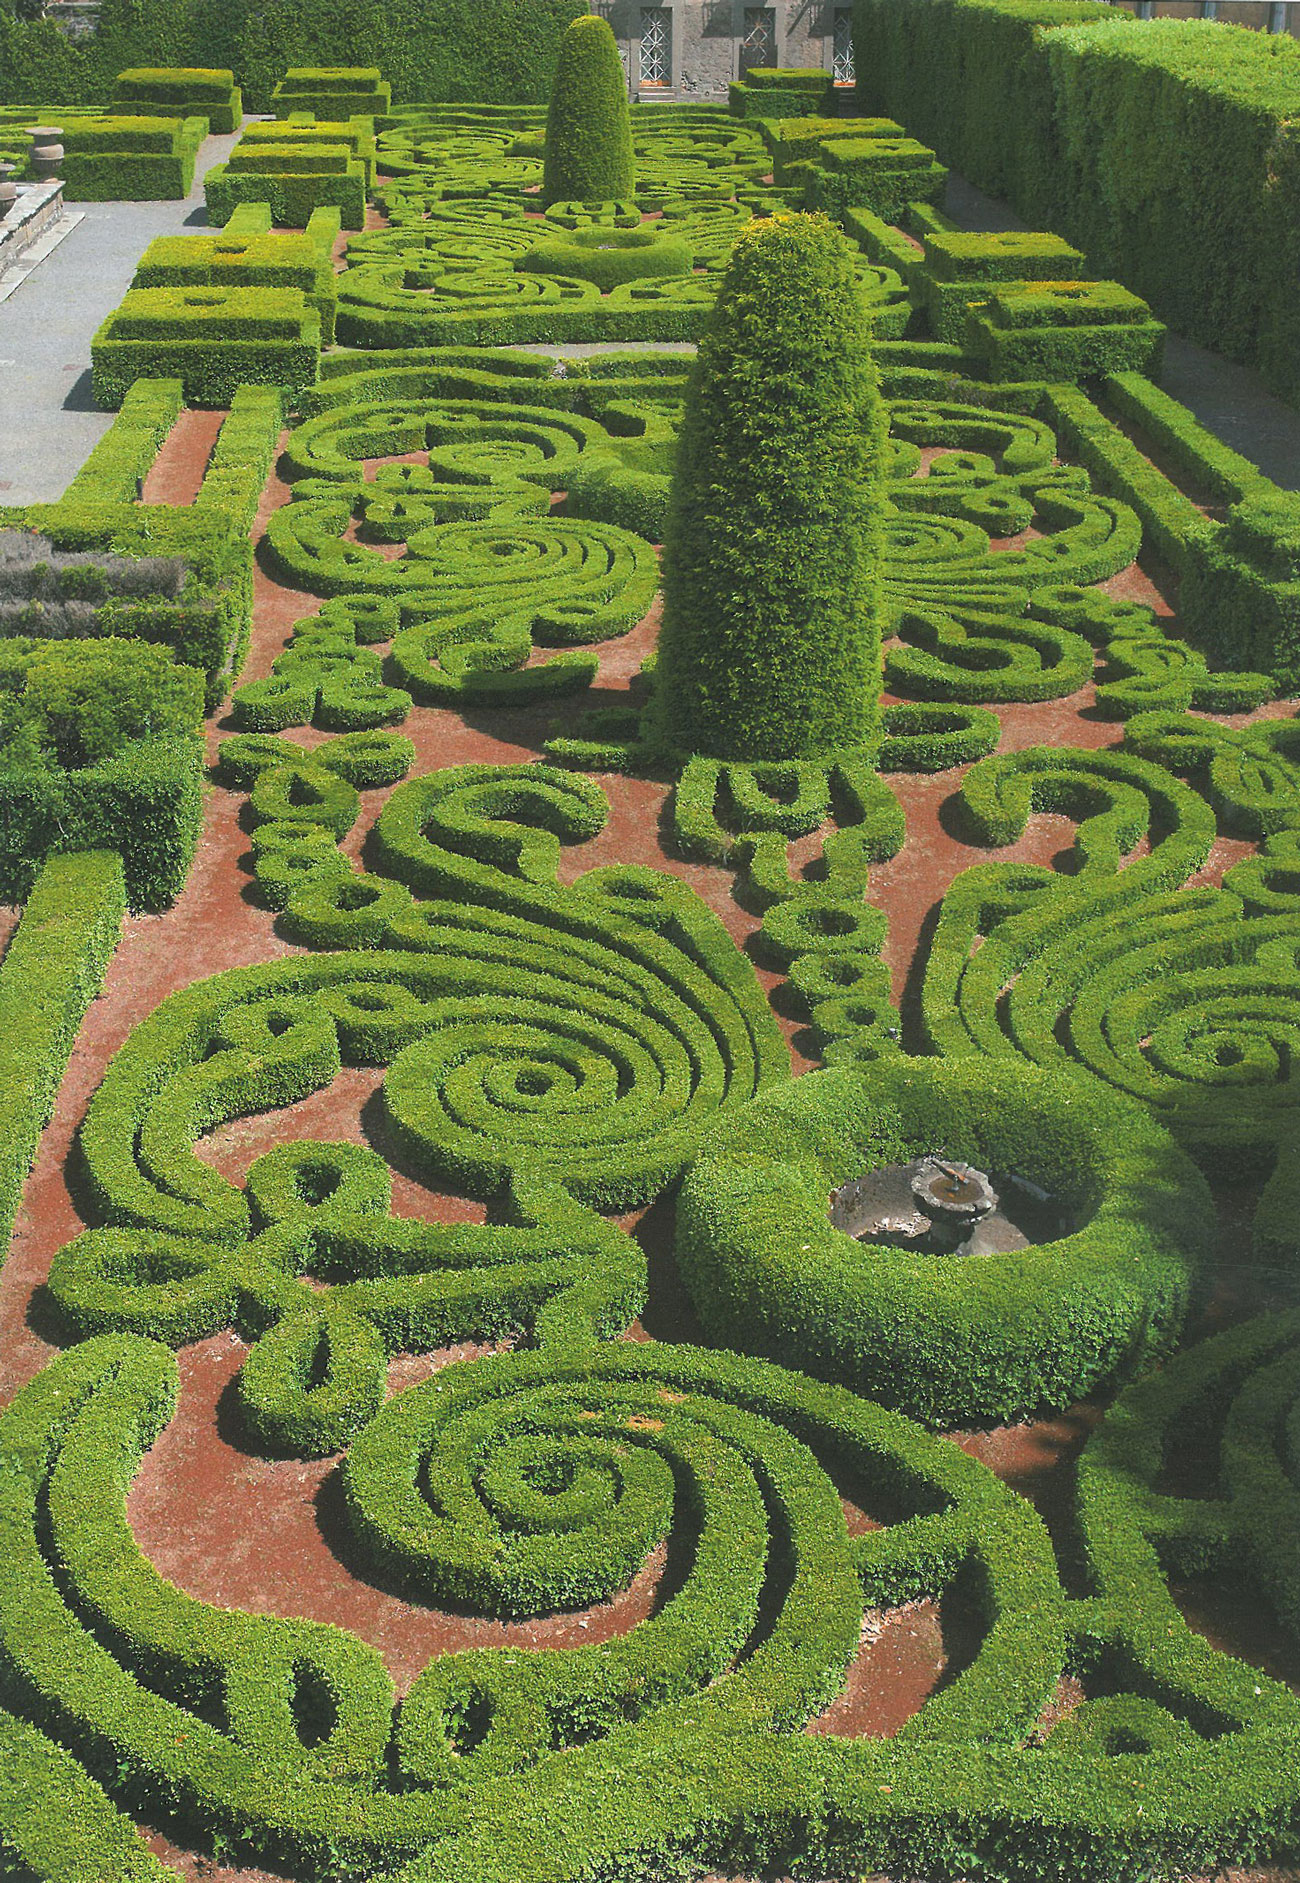 Curlicues Galore, on a sunny day, in the Fountain of the Moors gardens. Image courtesy of Il Pegaso Bookshop, in Bagnaia.